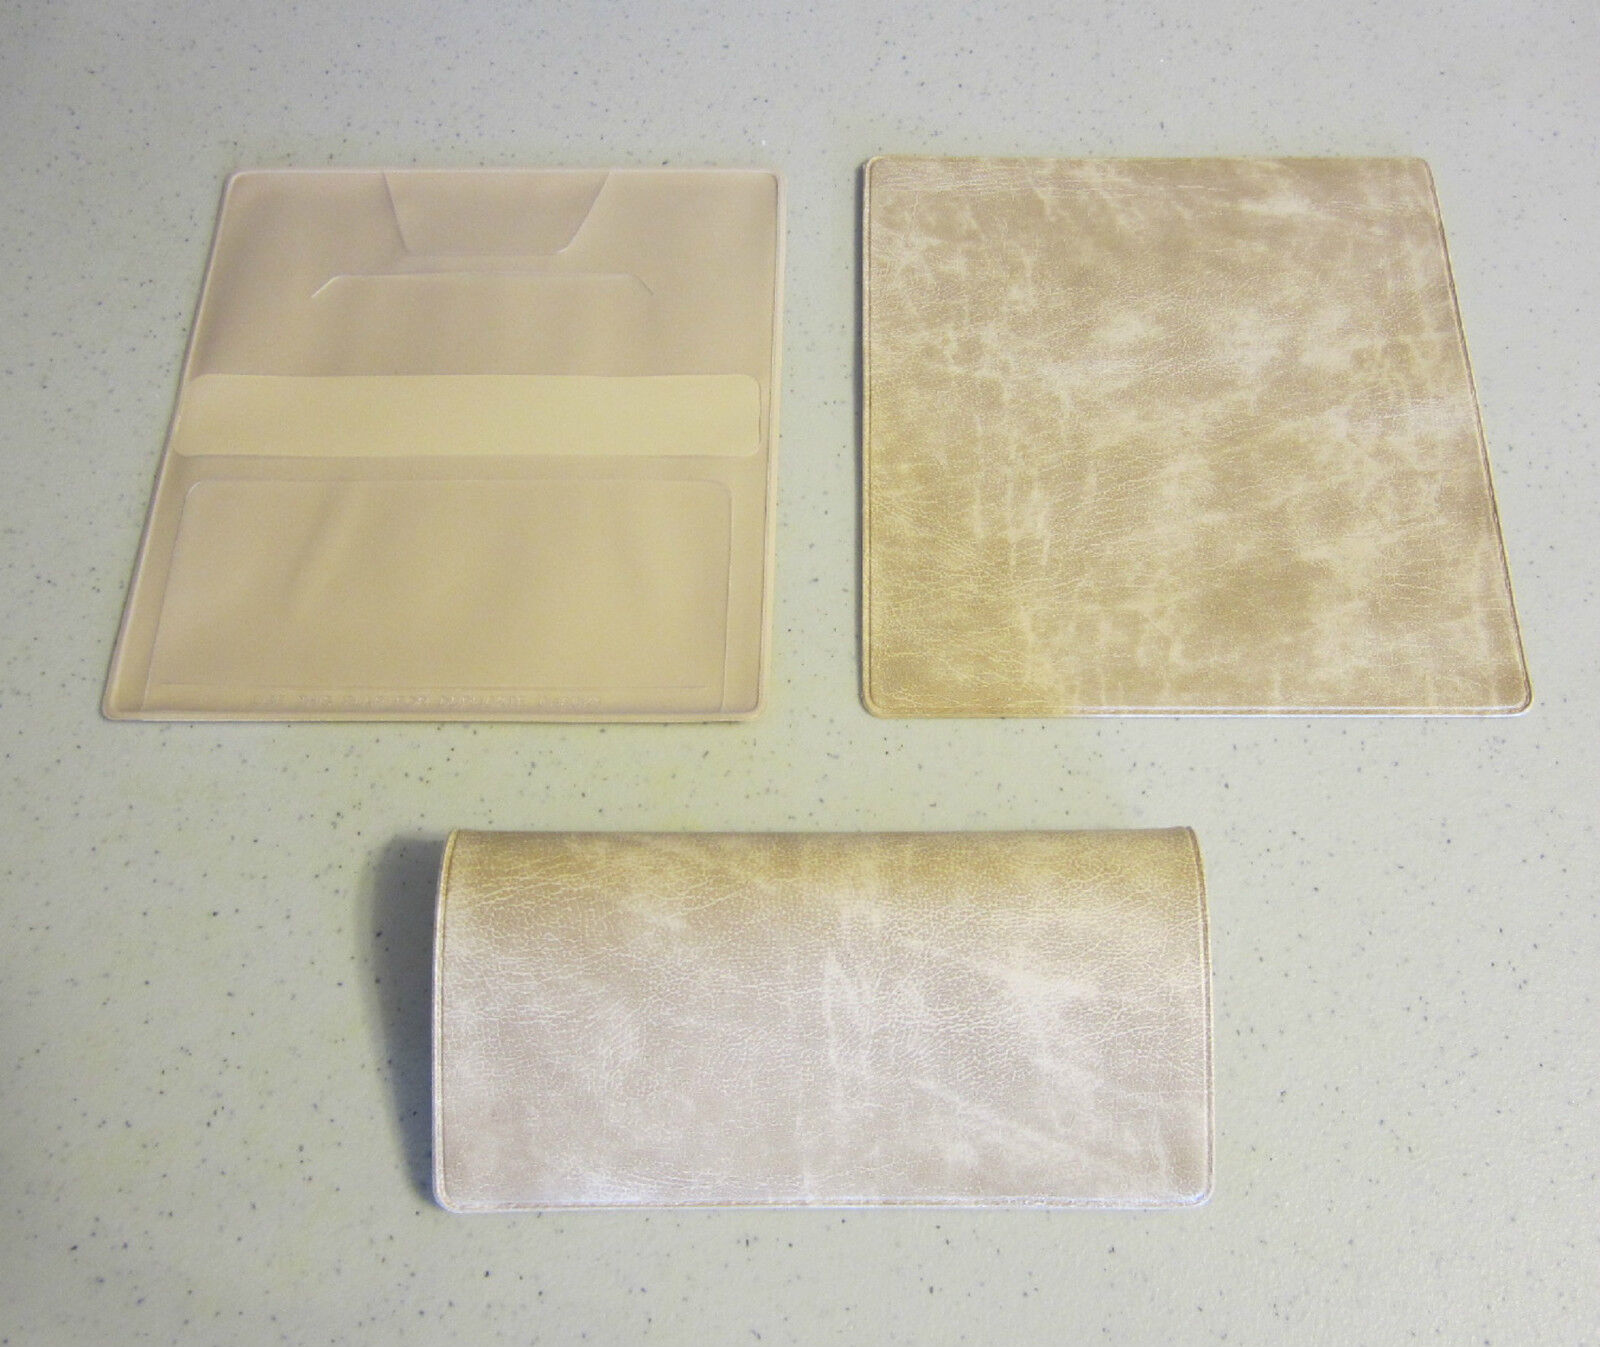 1 NEW PARCHMENT WHITE MARBLE VINYL CHECKBOOK COVER WITH DUPLICATE FLAP